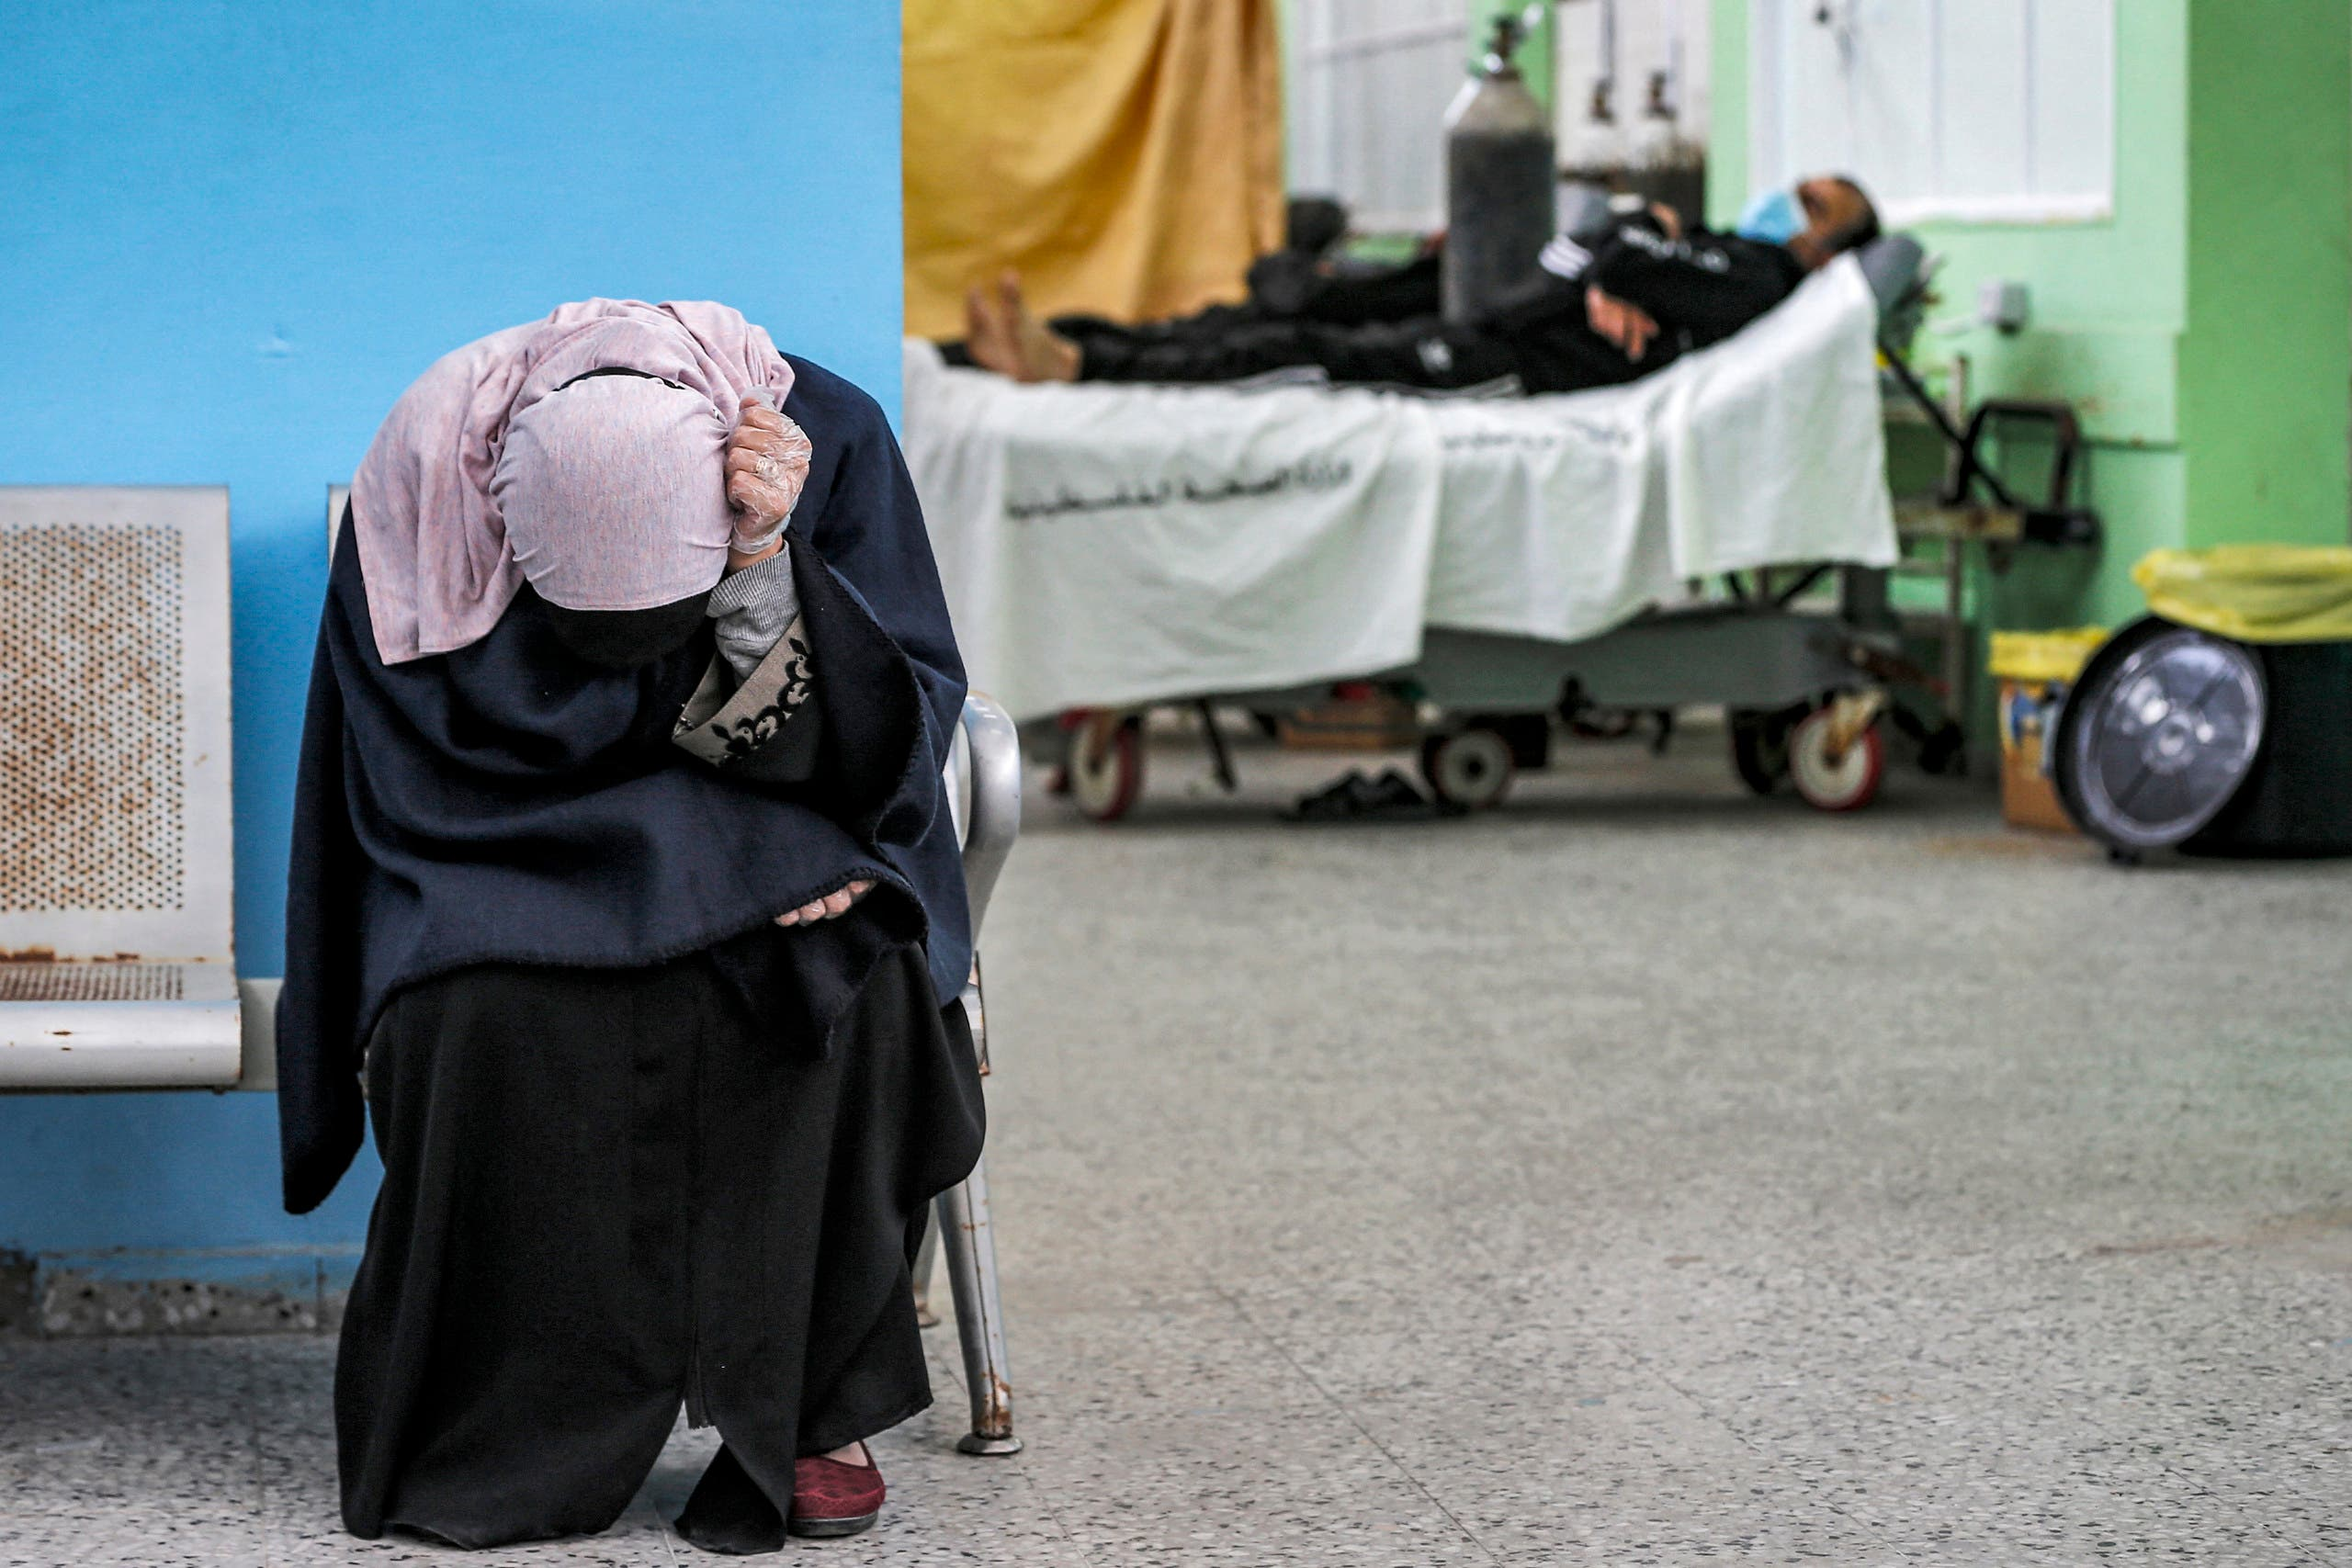 A Palestinian woman reacts while waiting for her husband (background) at the COVID-19 intensive care unit of al-Shifa Hospital in Gaza City on April 7, 2021. (File photo: AFP)